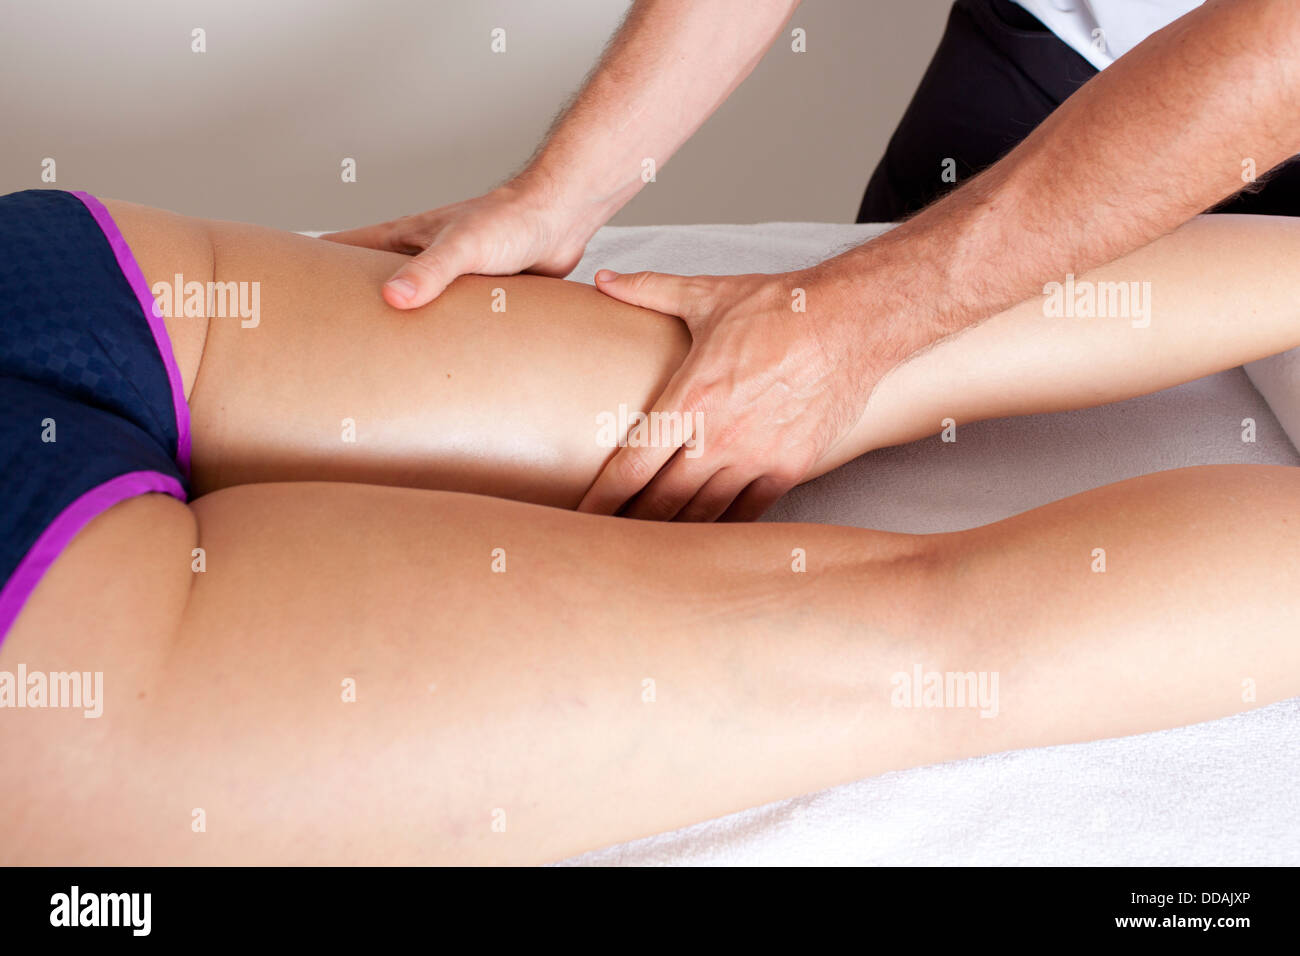 myofascial therapy - Stock Image